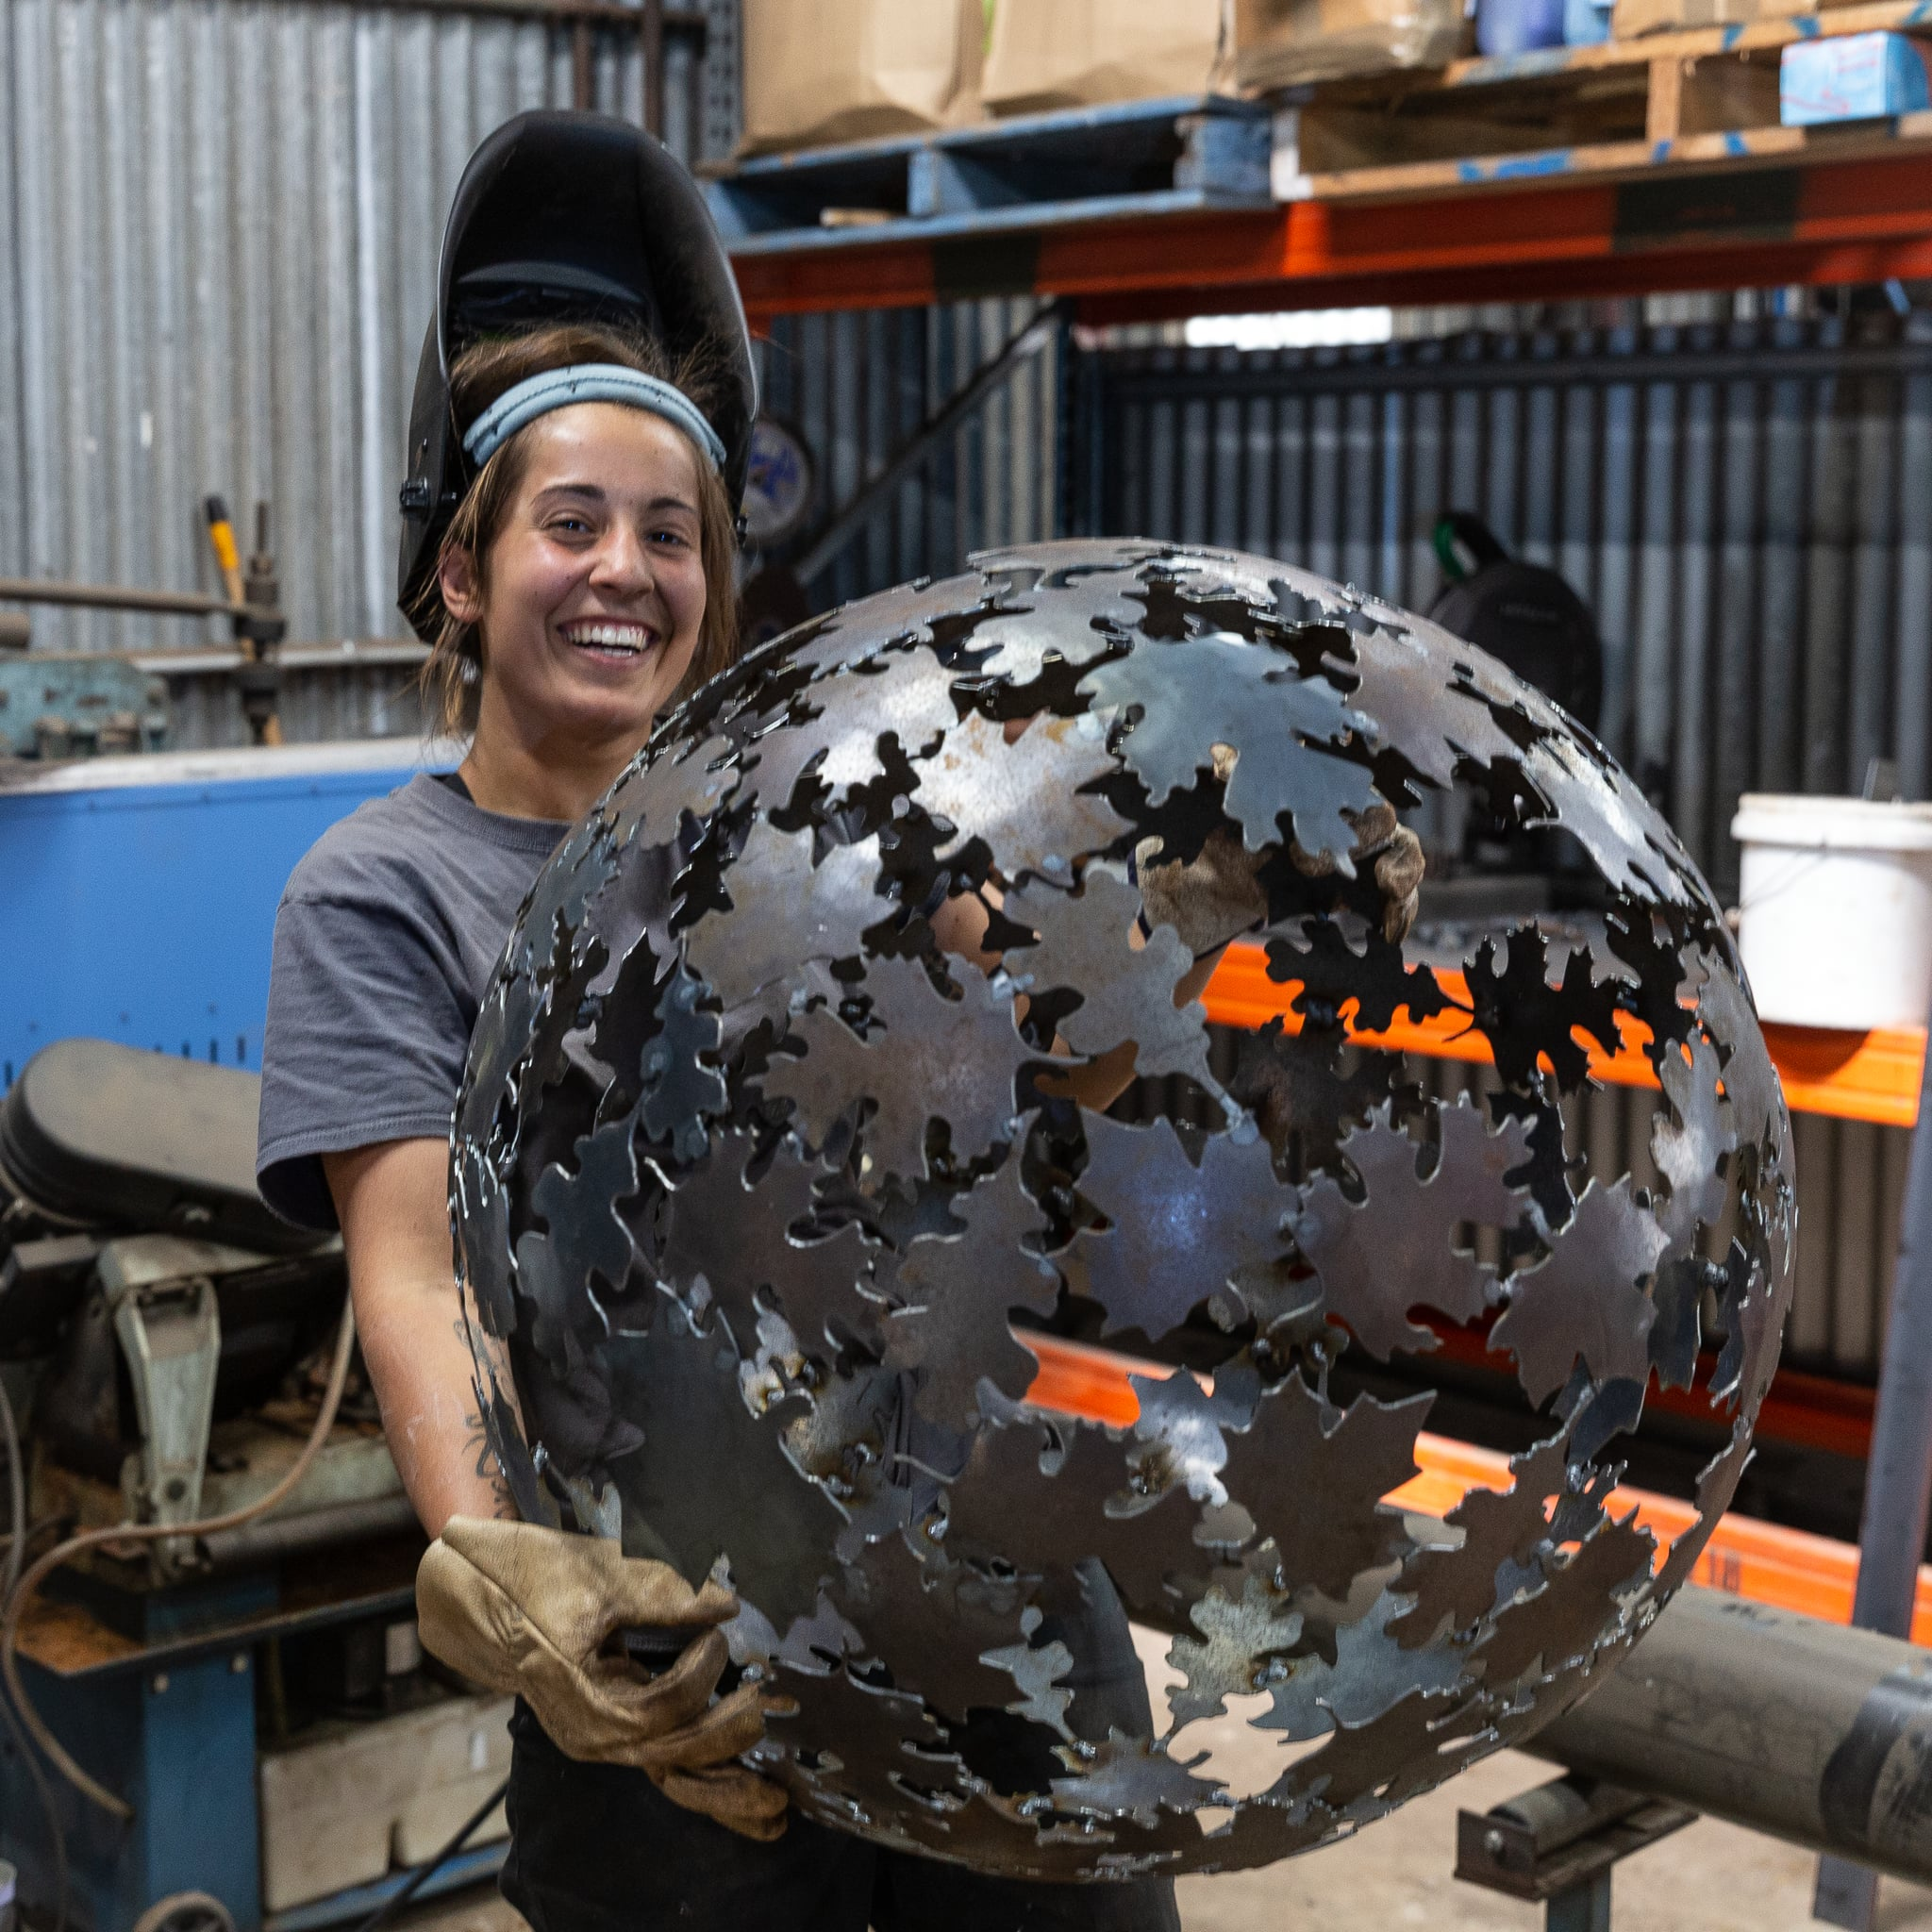 Woman holding spherical sculpture